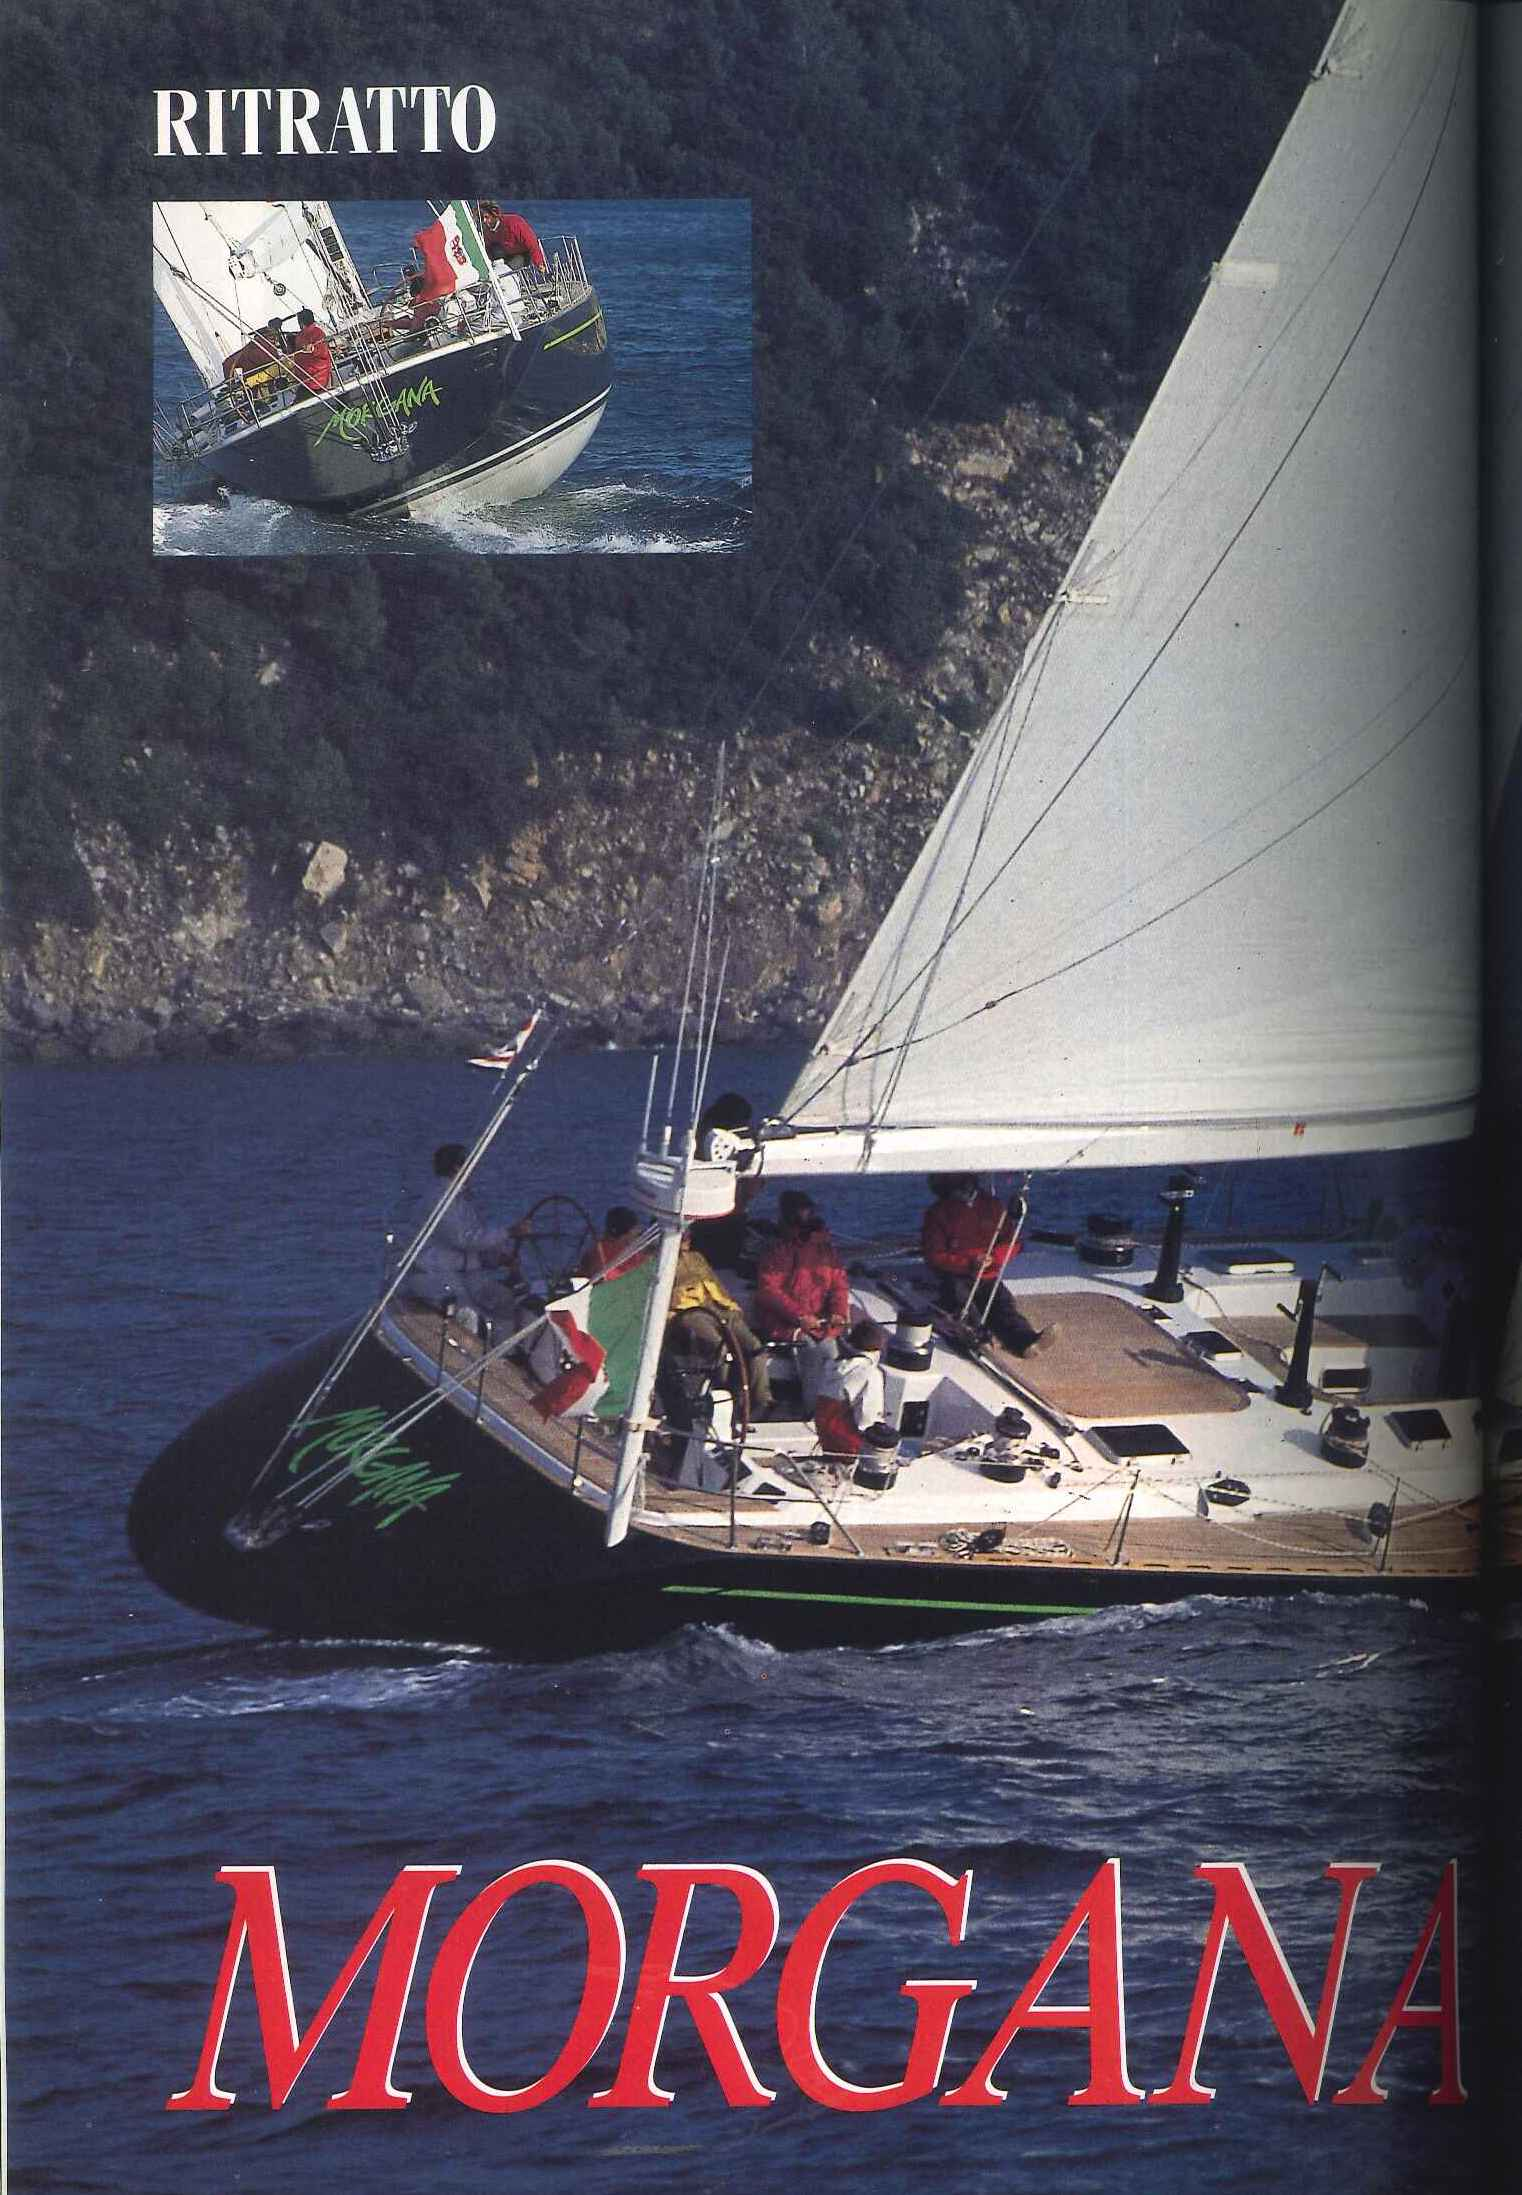 1992 06 PRESS MORGANA Uomo Mare n°161 (2).jpg